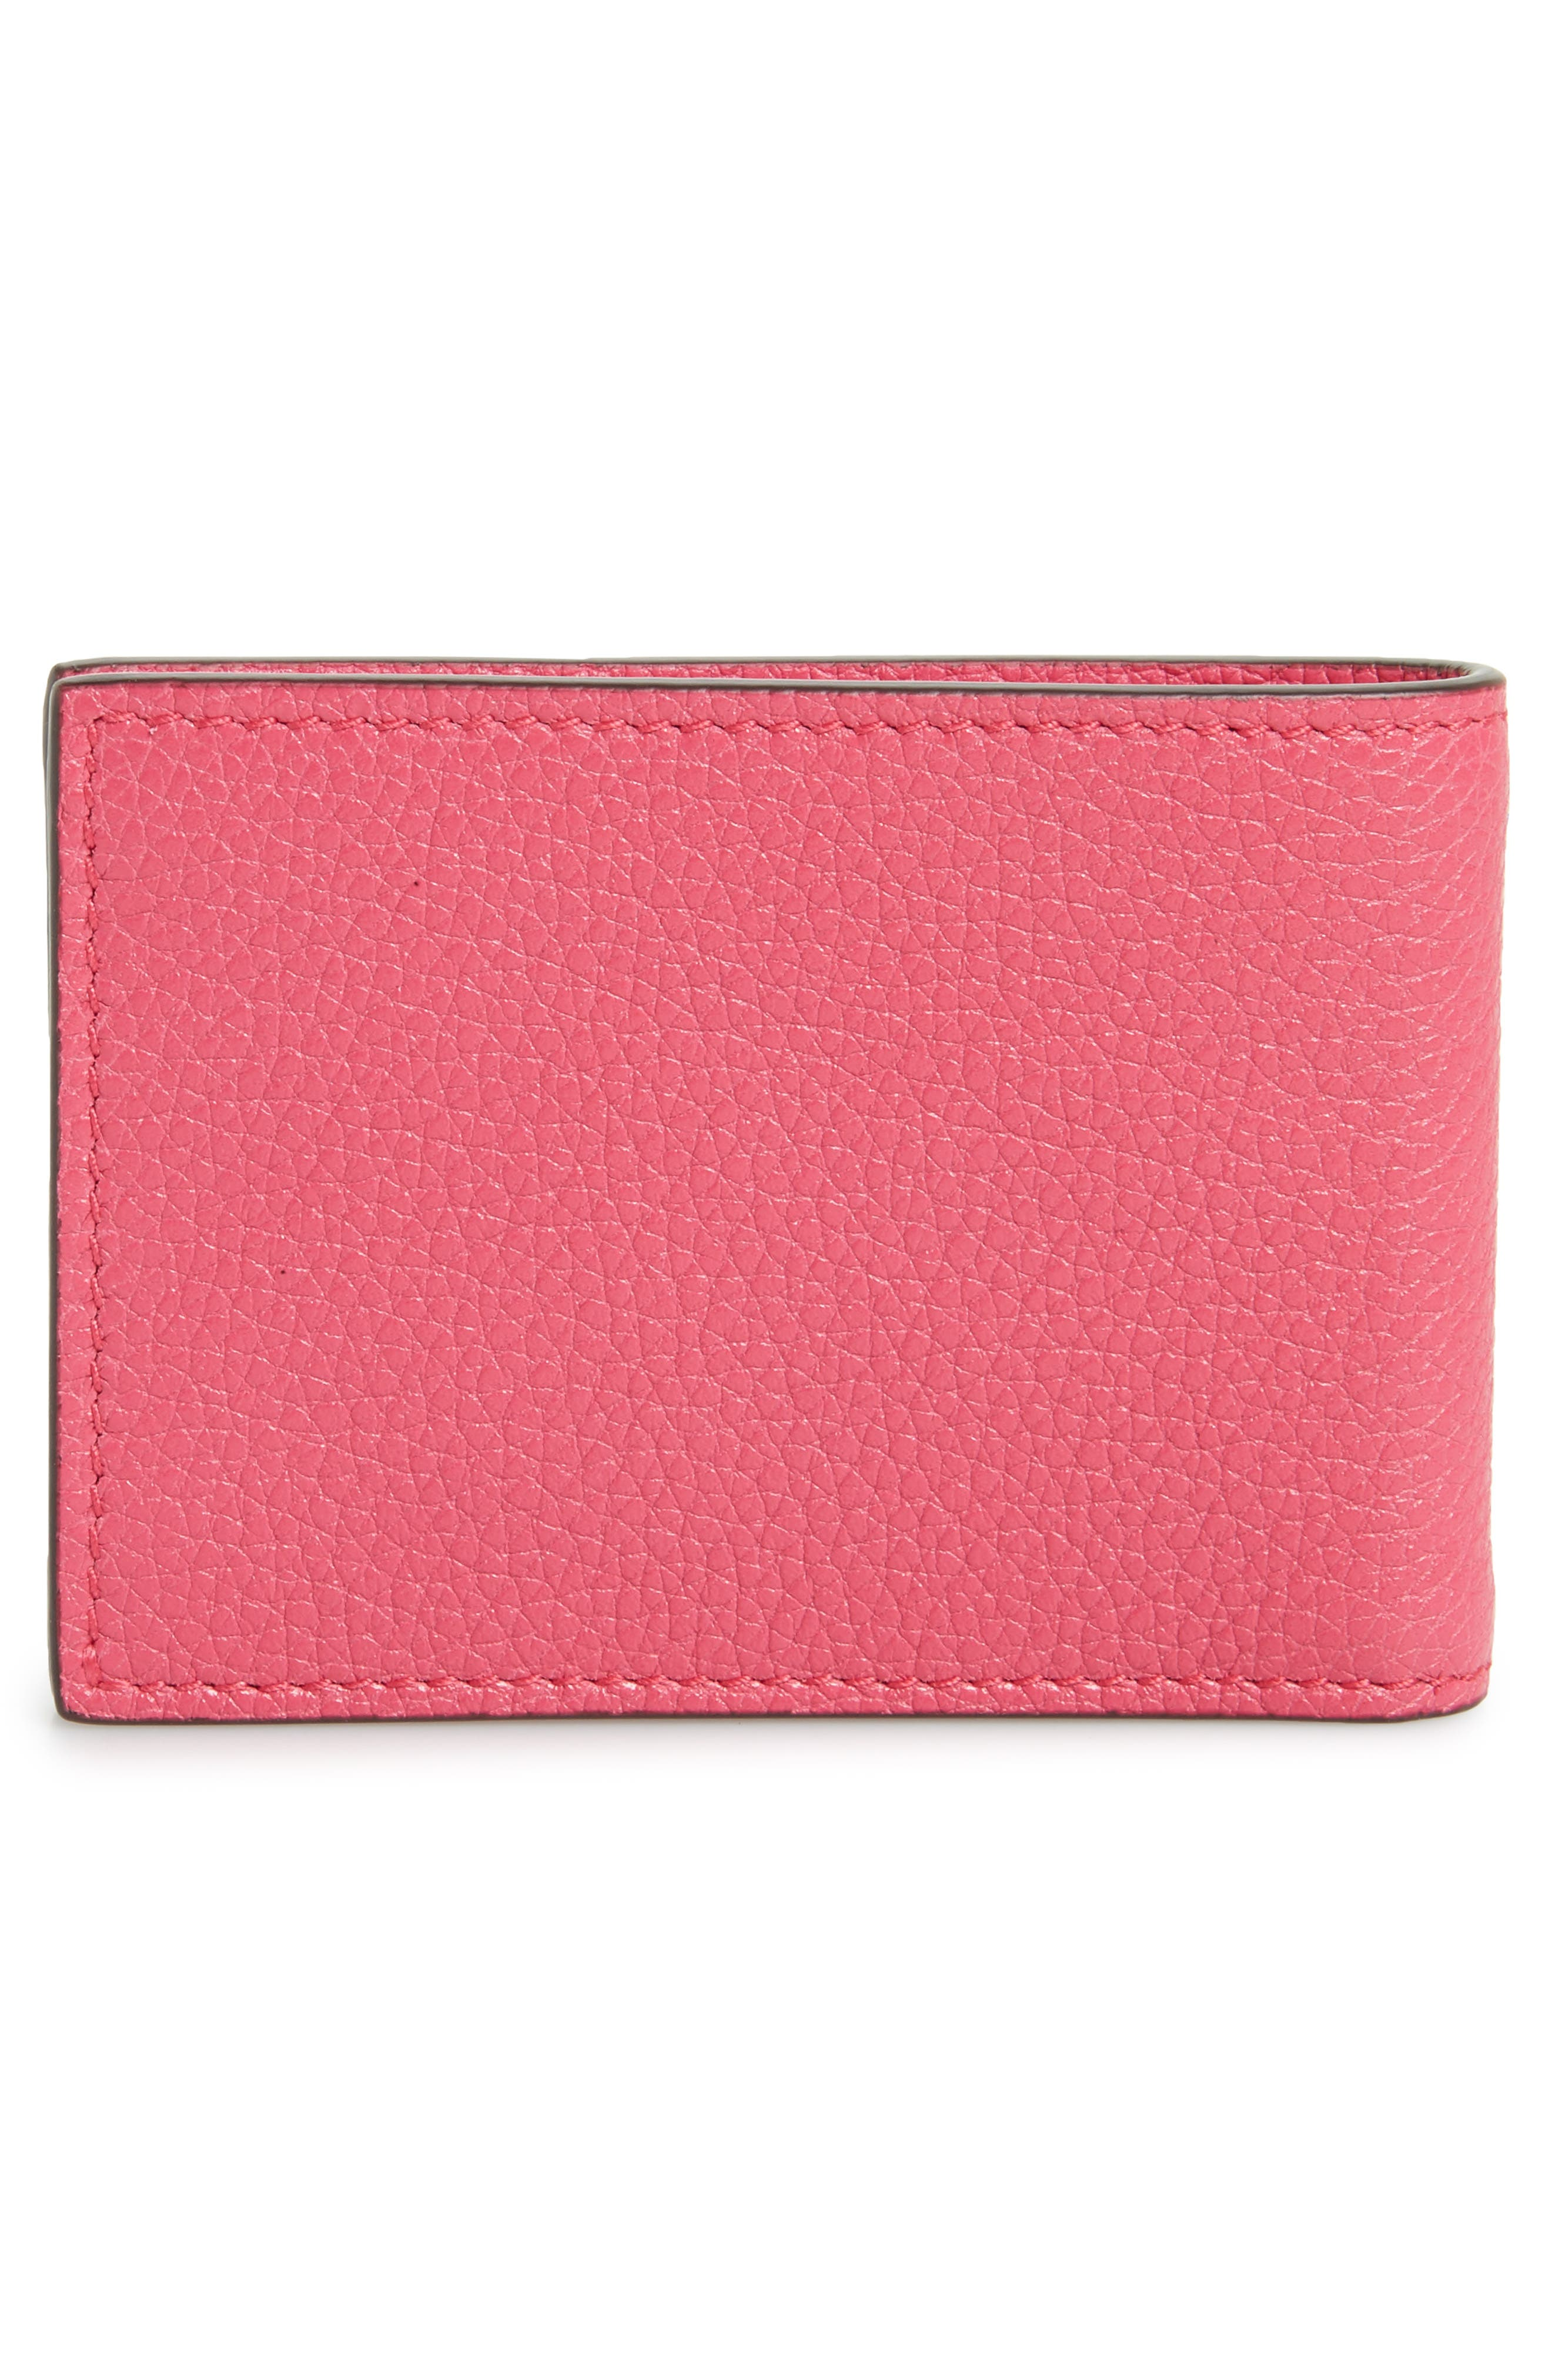 Bifold Leather Wallet,                             Alternate thumbnail 3, color,                             Pink